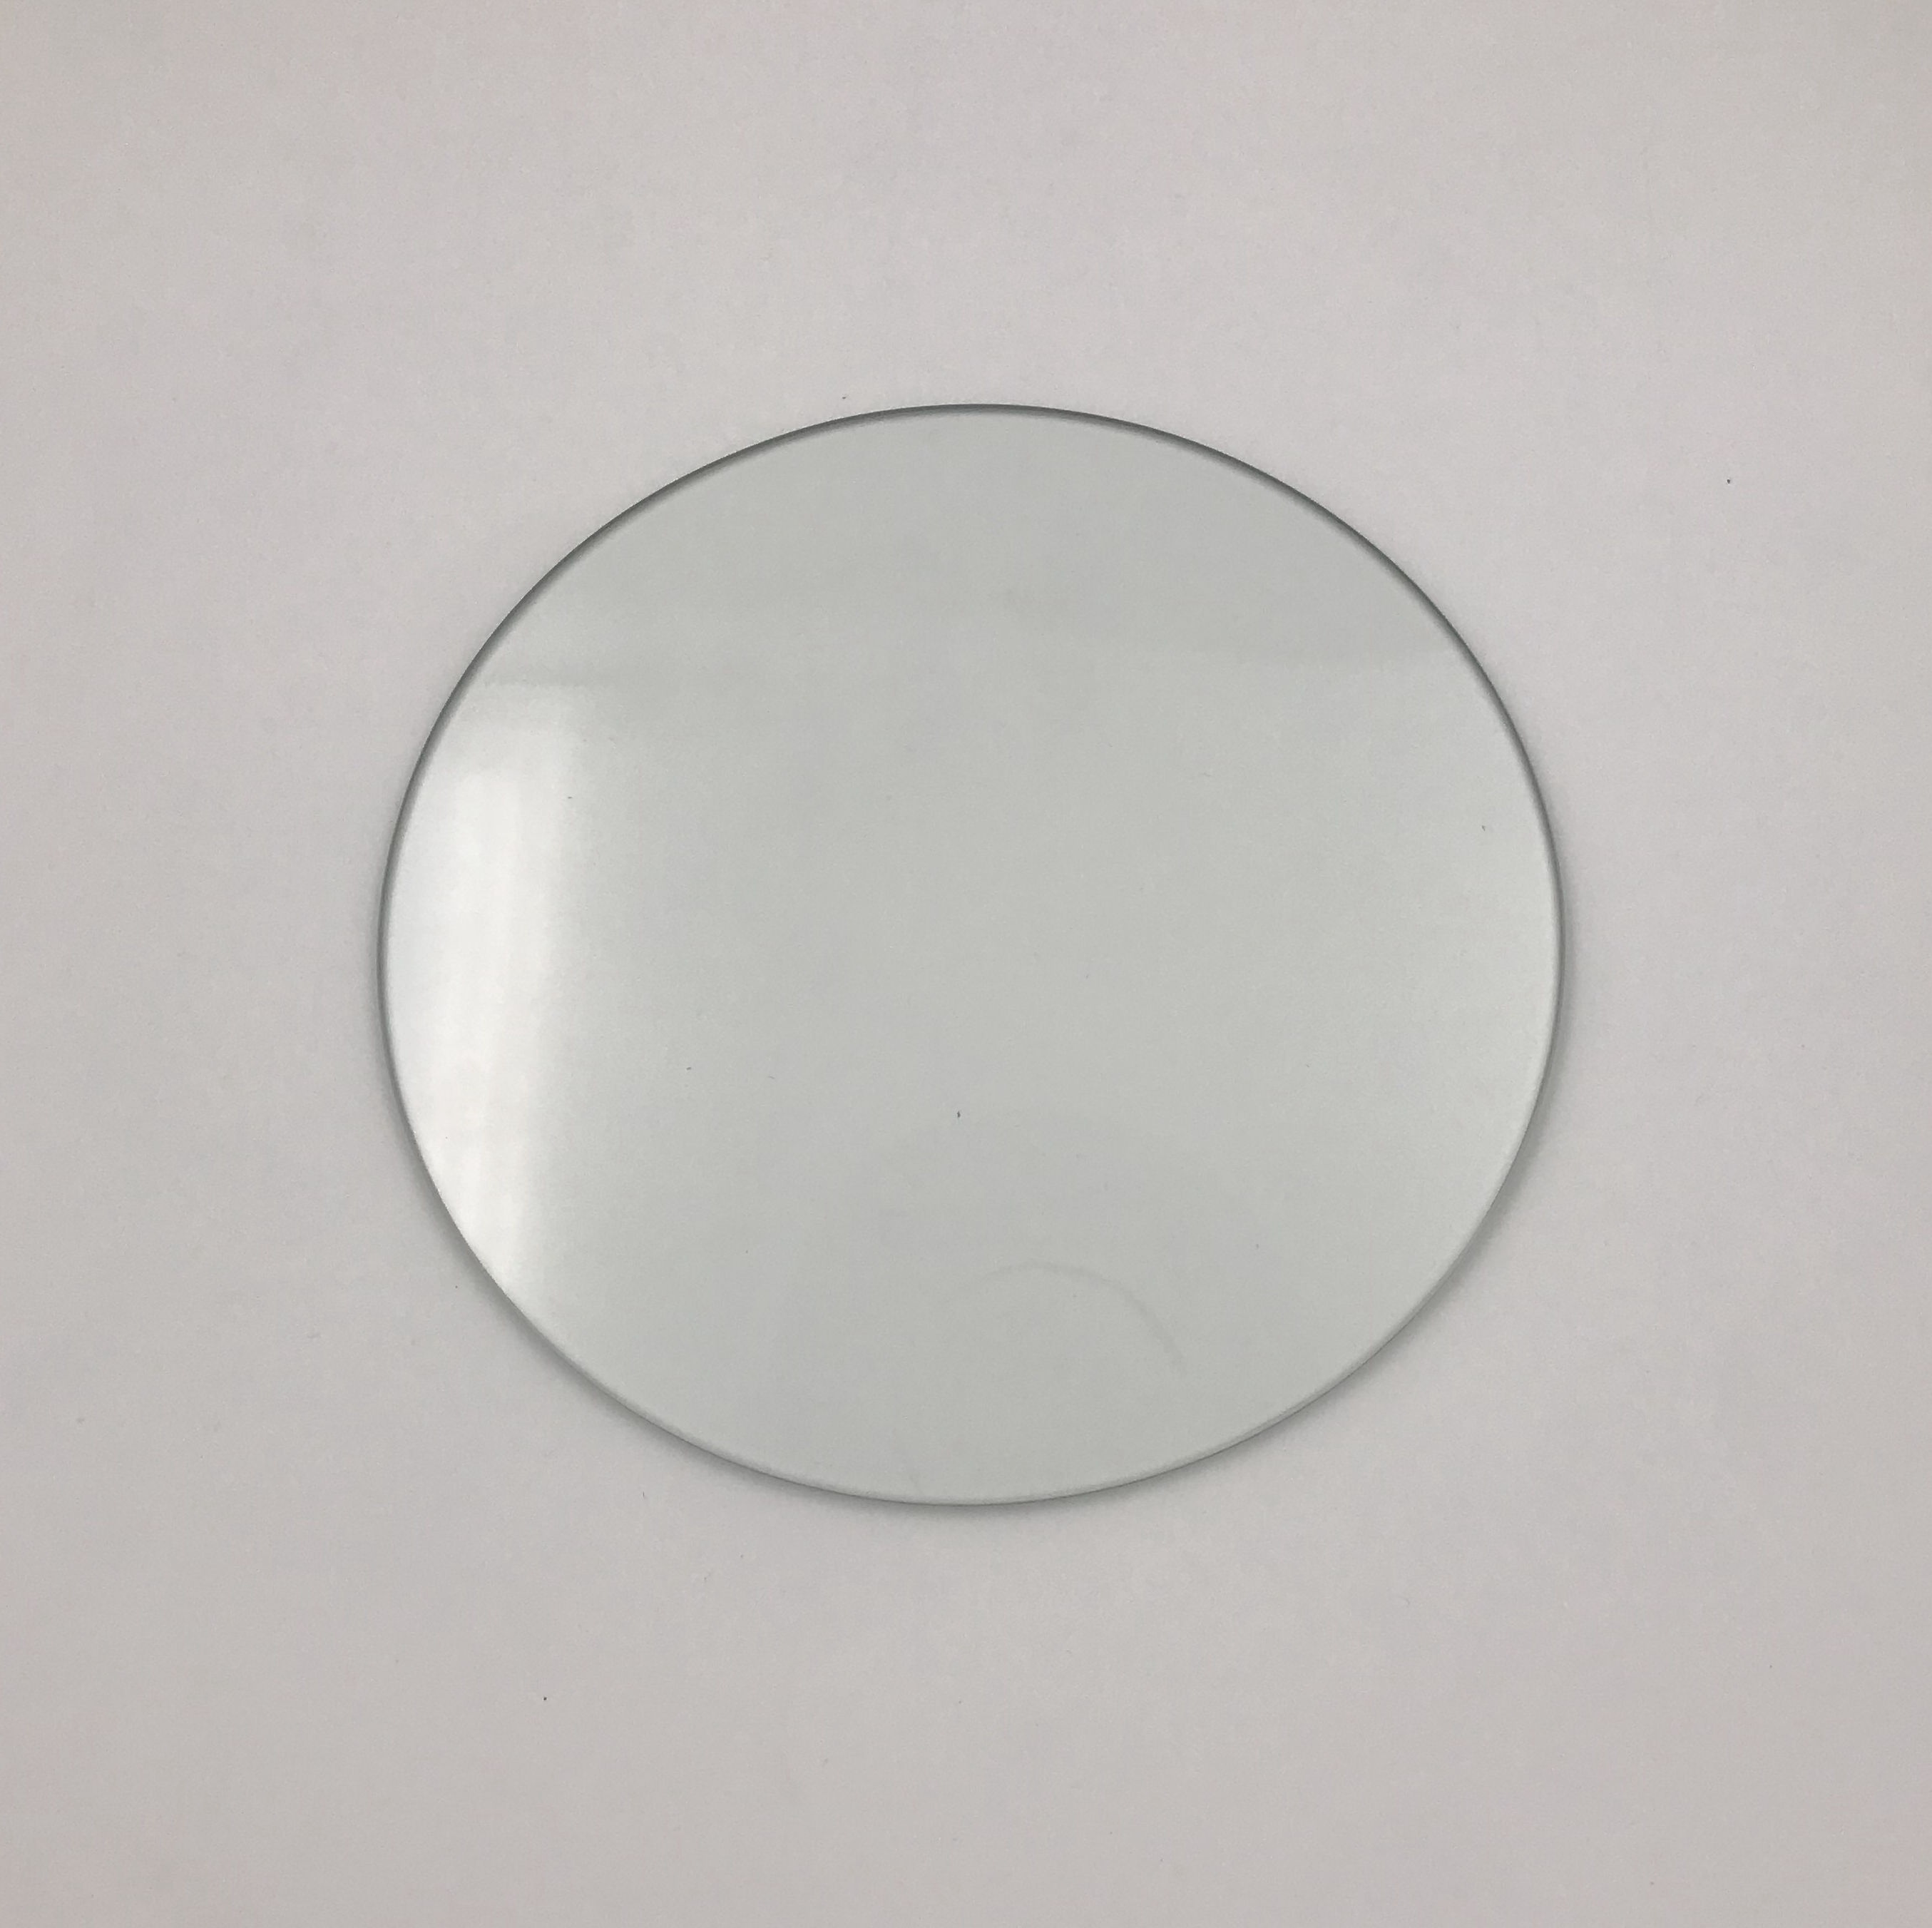 Clear tempered glass coaster, glass coaster for cup